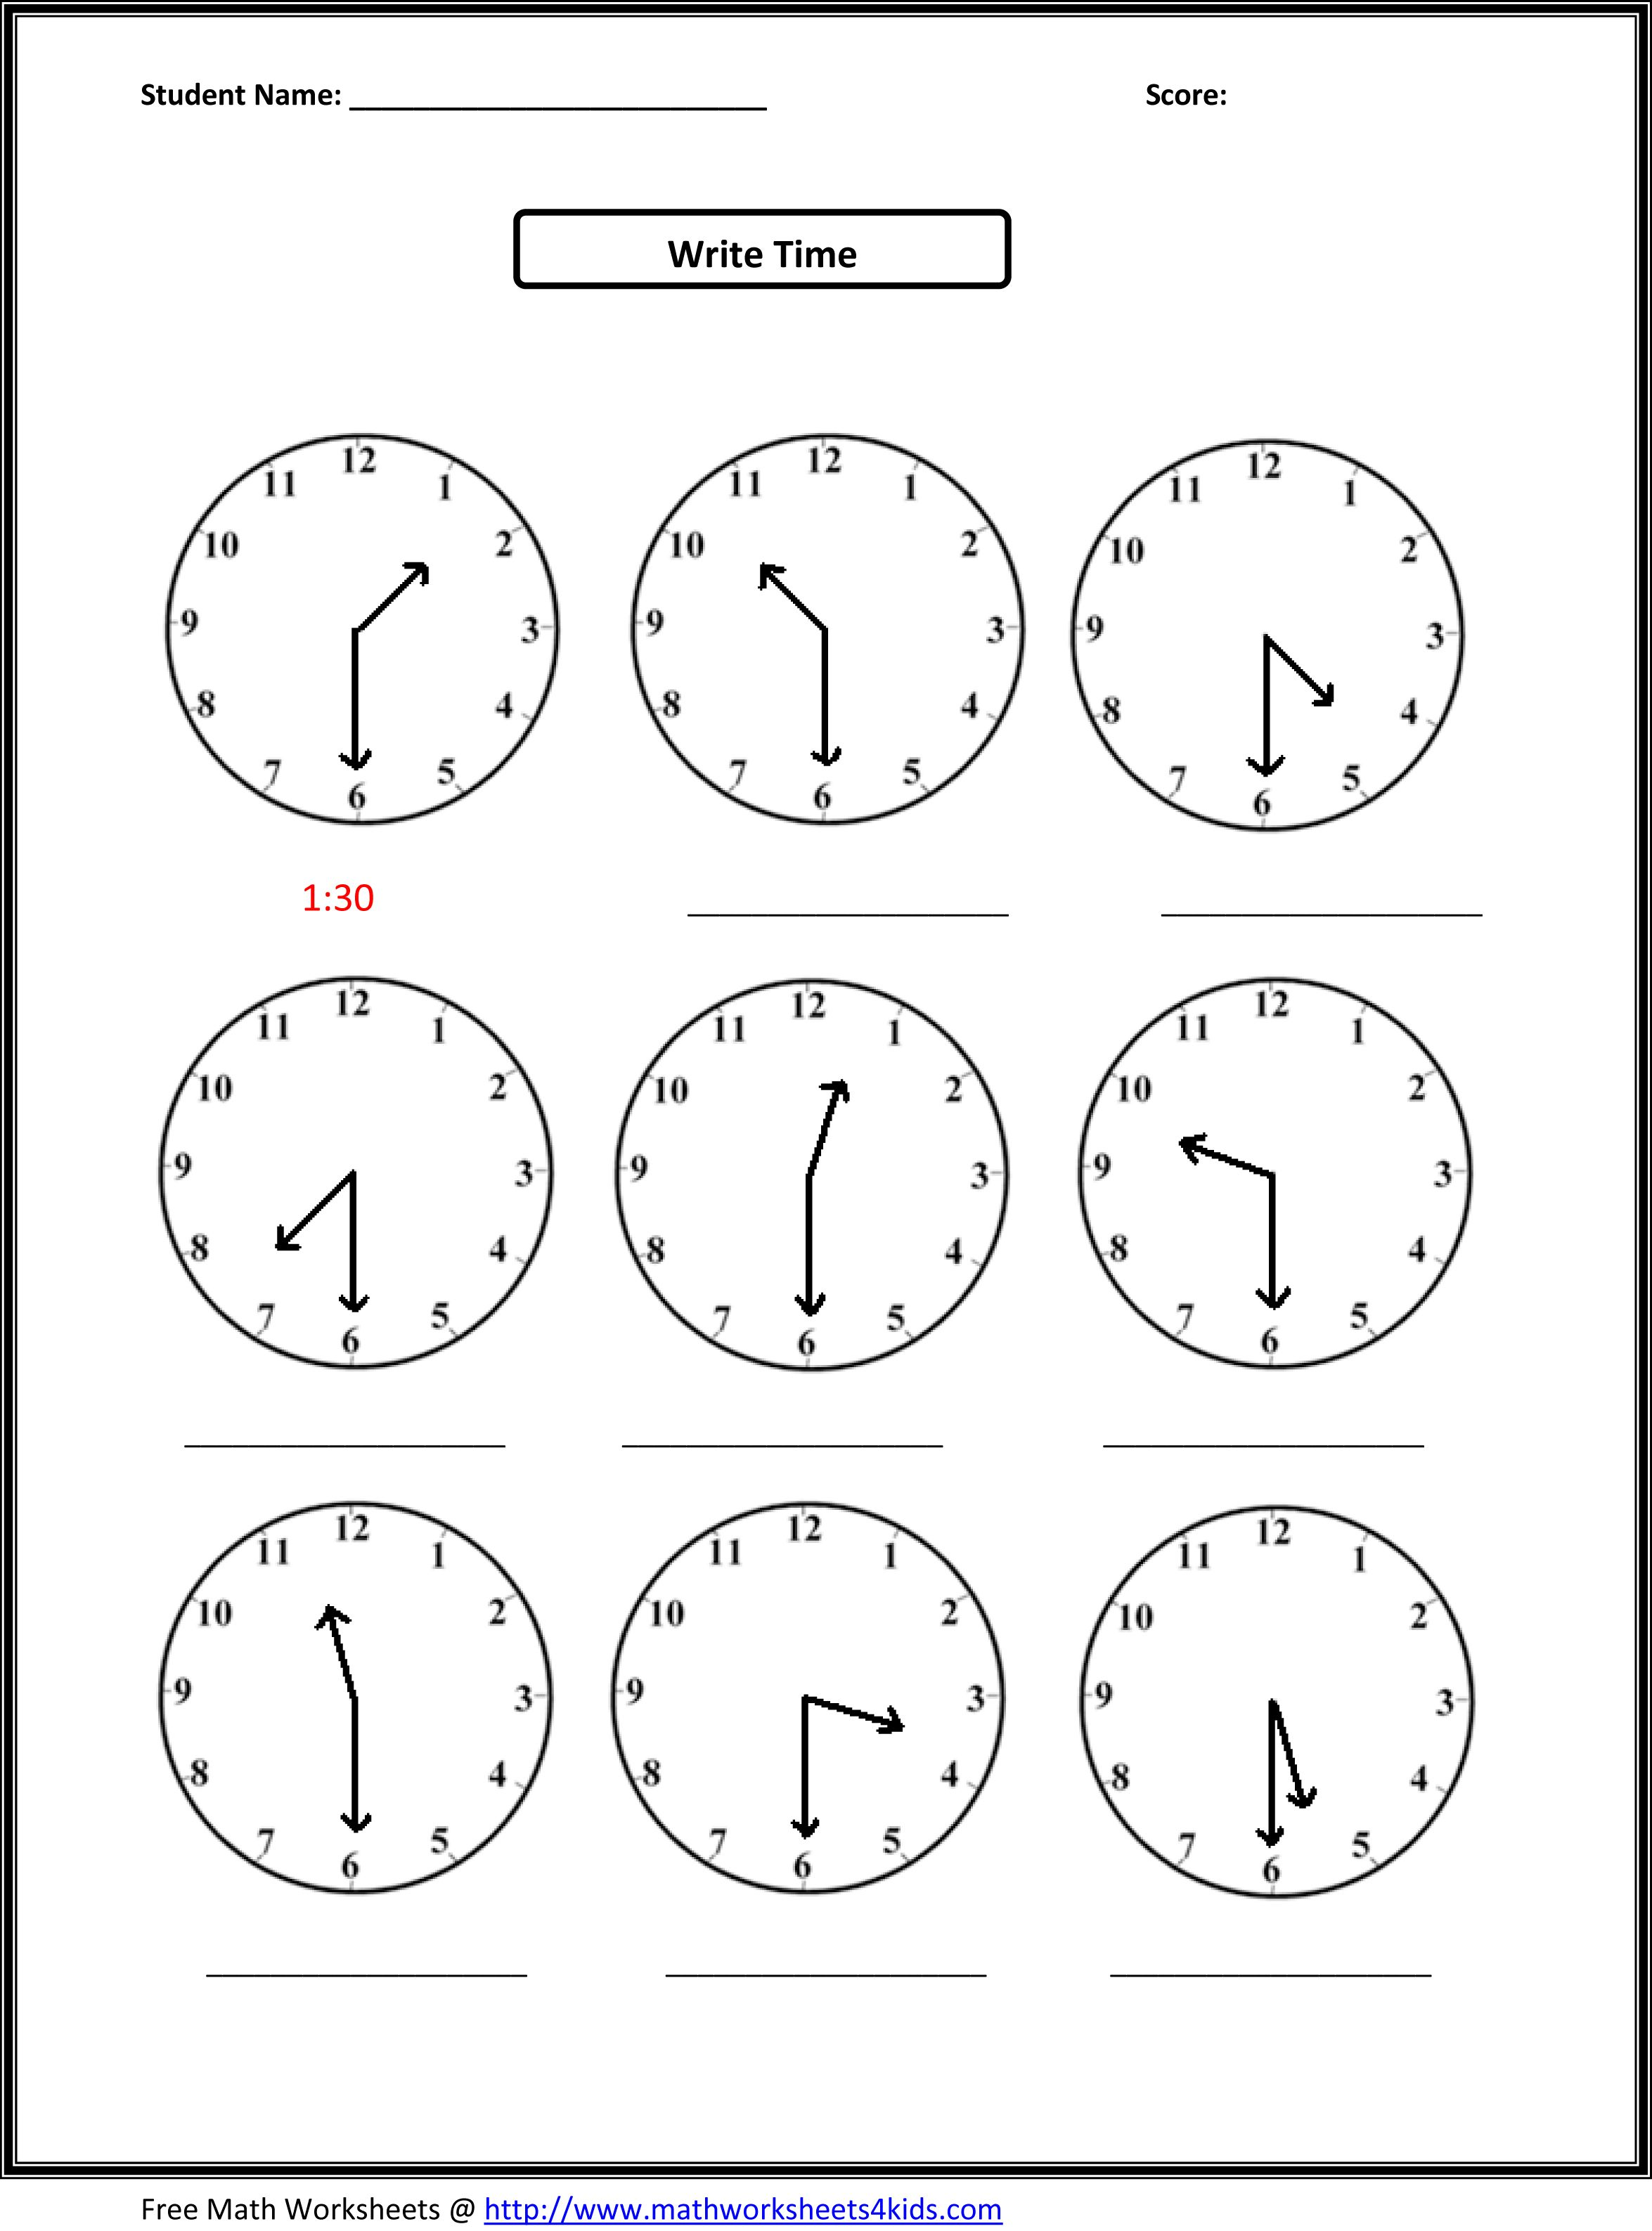 Weirdmailus  Marvellous Worksheet On Time For Grade   Reocurent With Exquisite Free Printable Telling Time Worksheets Nd Grade  Reocurent With Captivating Th Grade Homeschool Worksheets Also Graph Equations Worksheet In Addition Nd Grade Sequencing Worksheets And Worksheet Simplifying Radicals As Well As Teaching Social Skills Worksheets Additionally Create A Food Web Worksheet From Reocurentcom With Weirdmailus  Exquisite Worksheet On Time For Grade   Reocurent With Captivating Free Printable Telling Time Worksheets Nd Grade  Reocurent And Marvellous Th Grade Homeschool Worksheets Also Graph Equations Worksheet In Addition Nd Grade Sequencing Worksheets From Reocurentcom